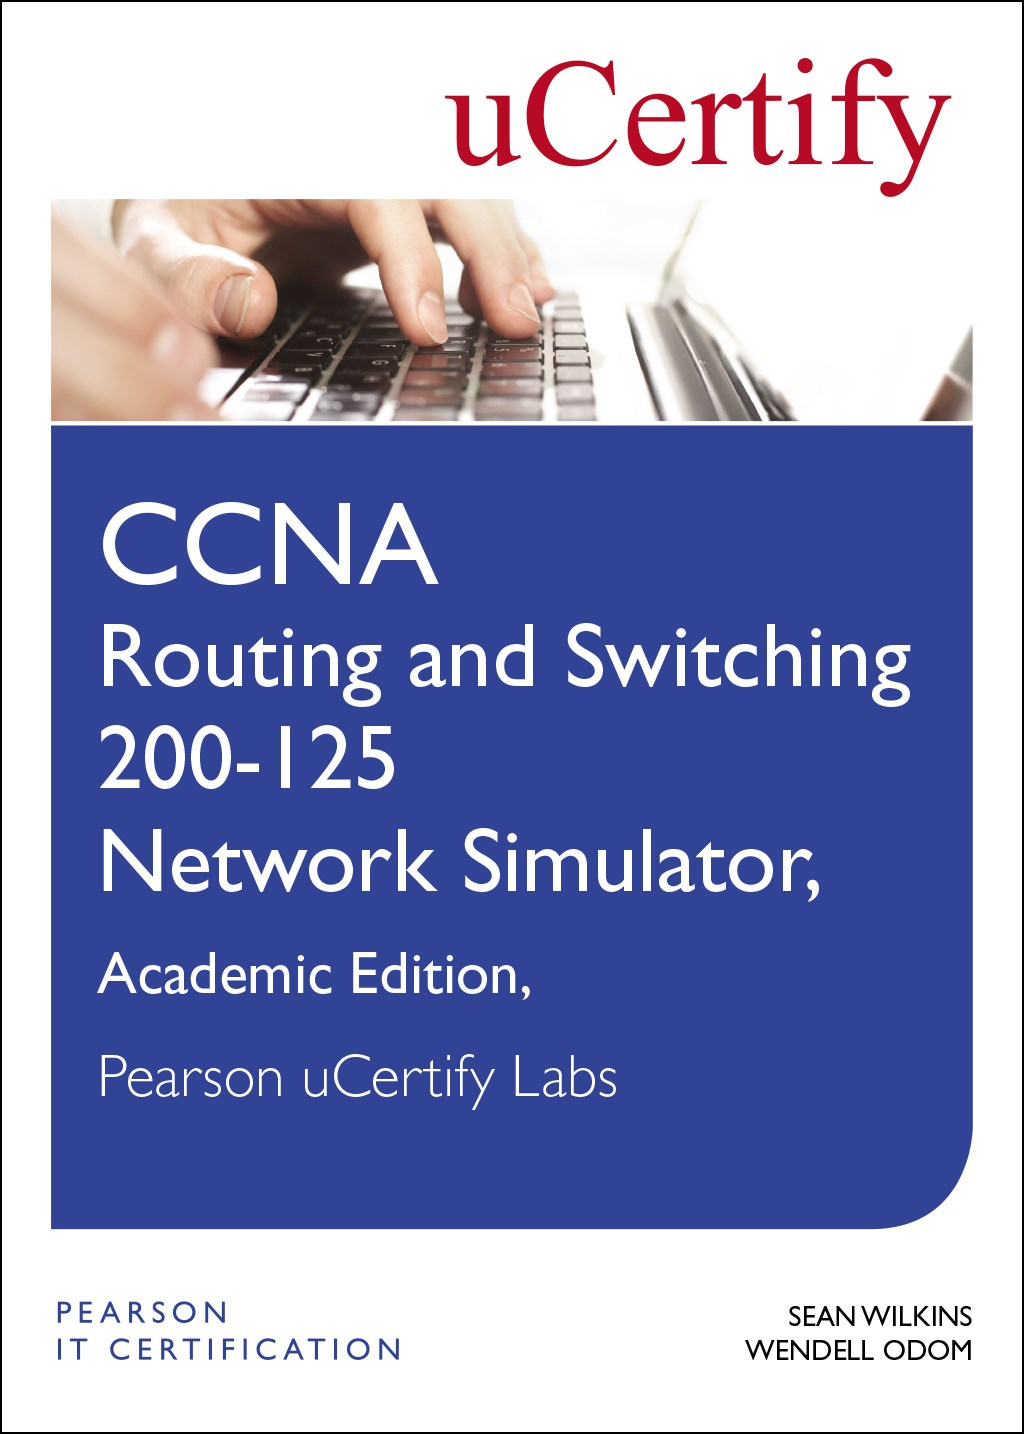 CCNA Routing and Switching 200-125 Network Simulator, Pearson uCertify Academic Edition Student Access Card